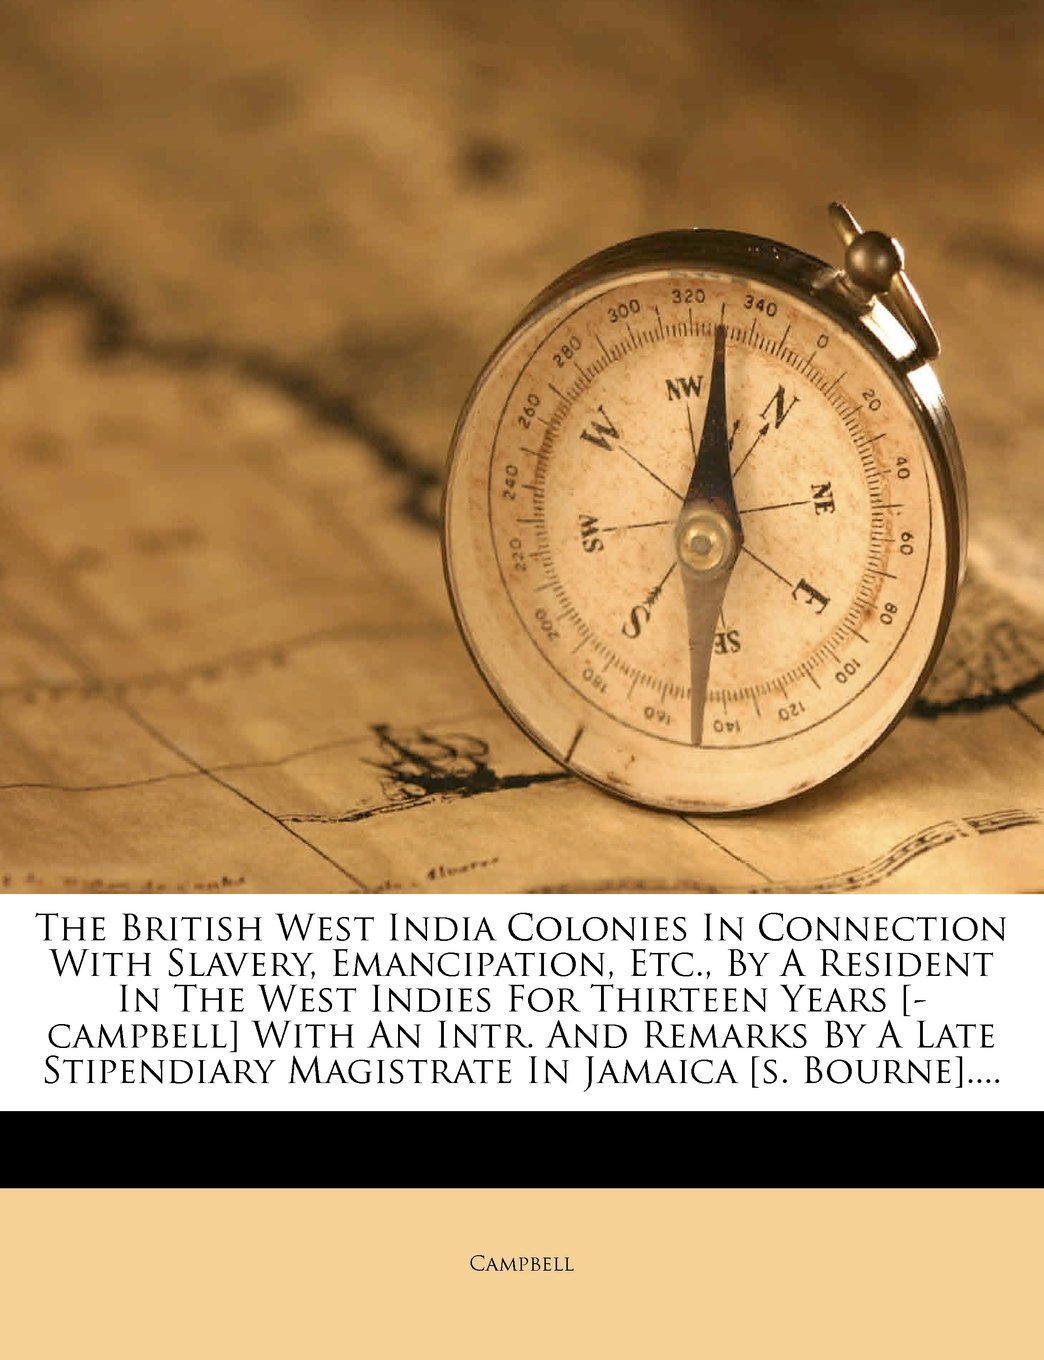 The British West India Colonies In Connection With Slavery, Emancipation, Etc., By A Resident In The West Indies For Thirteen Years [-campbell] With ... Magistrate In Jamaica [s. Bourne]....